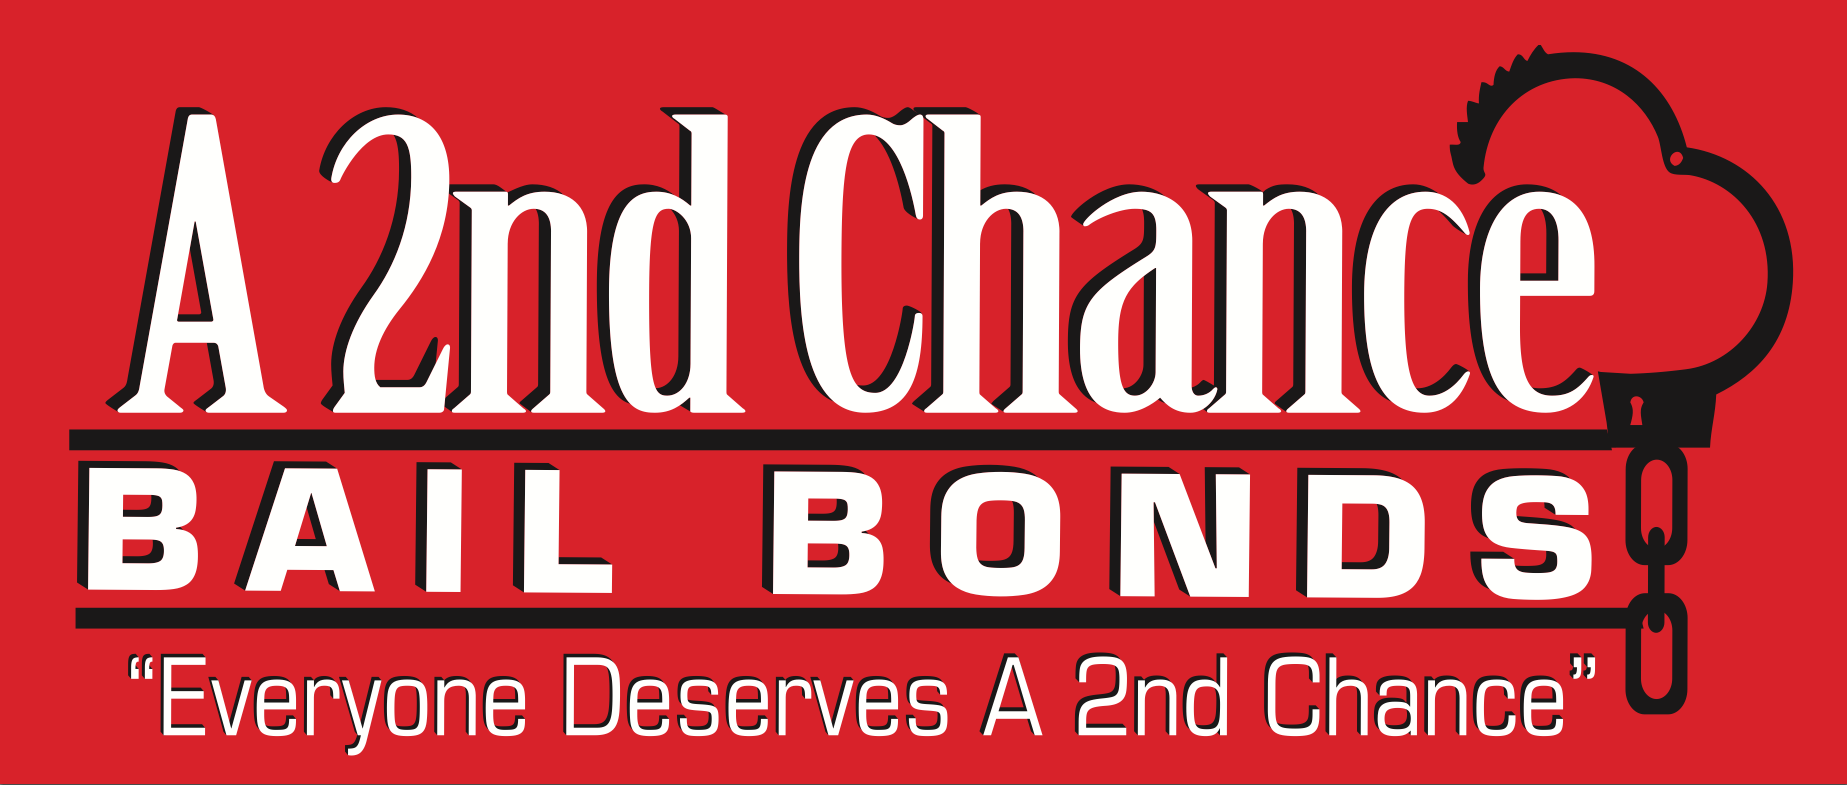 A 2nd Chance Bail Bonds.com/